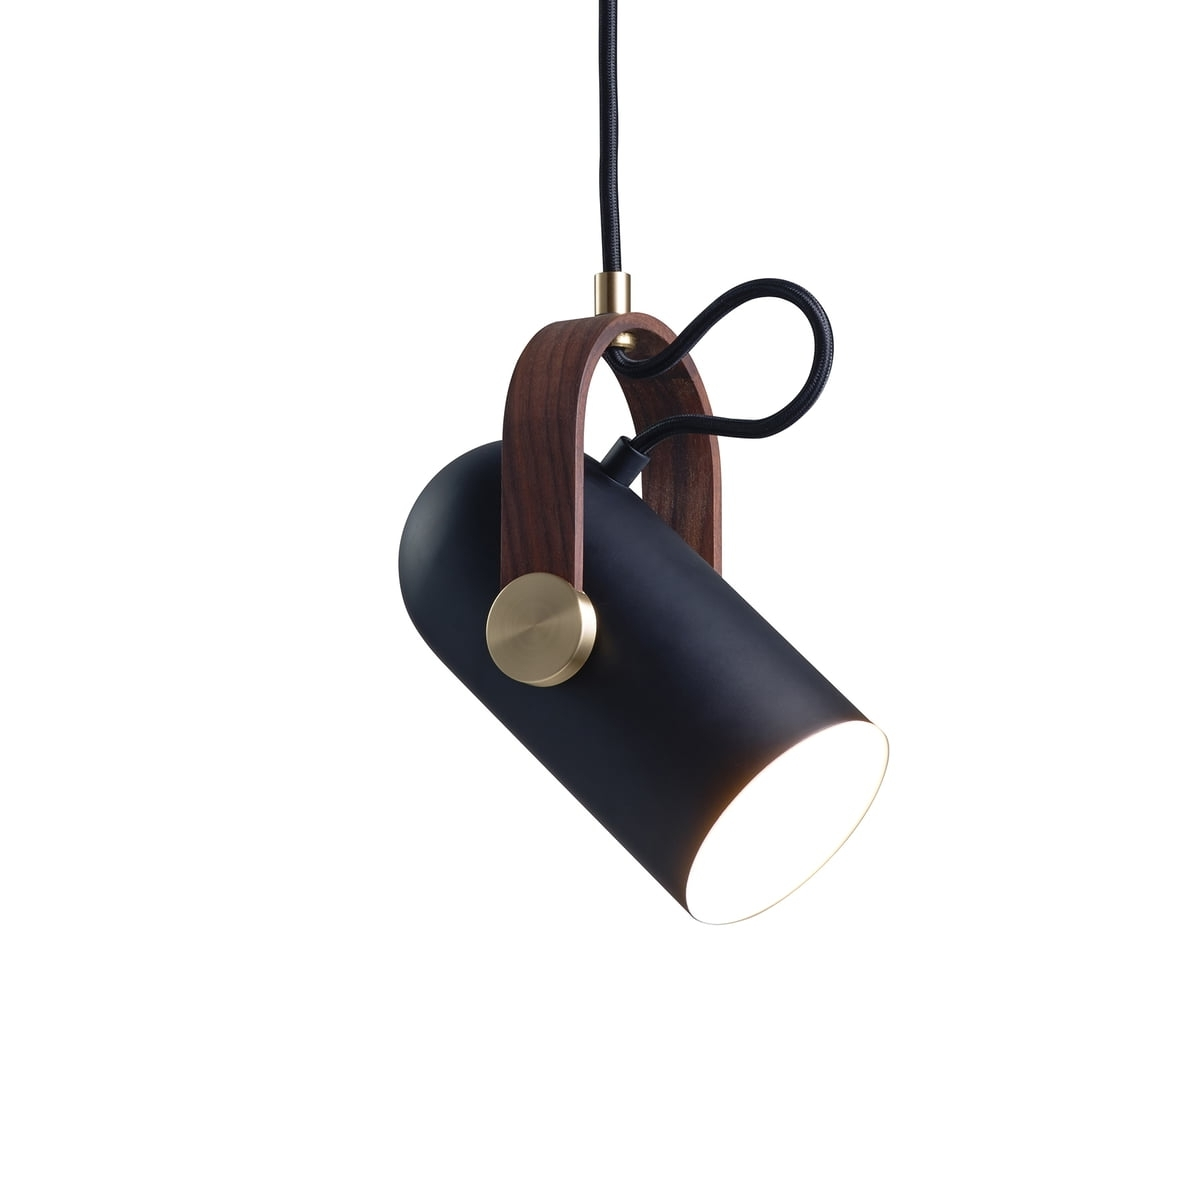 Outdoor Ceiling Lights At Rona Within Recent Carronade Pendant Lample Klint In Our Shop (View 15 of 20)